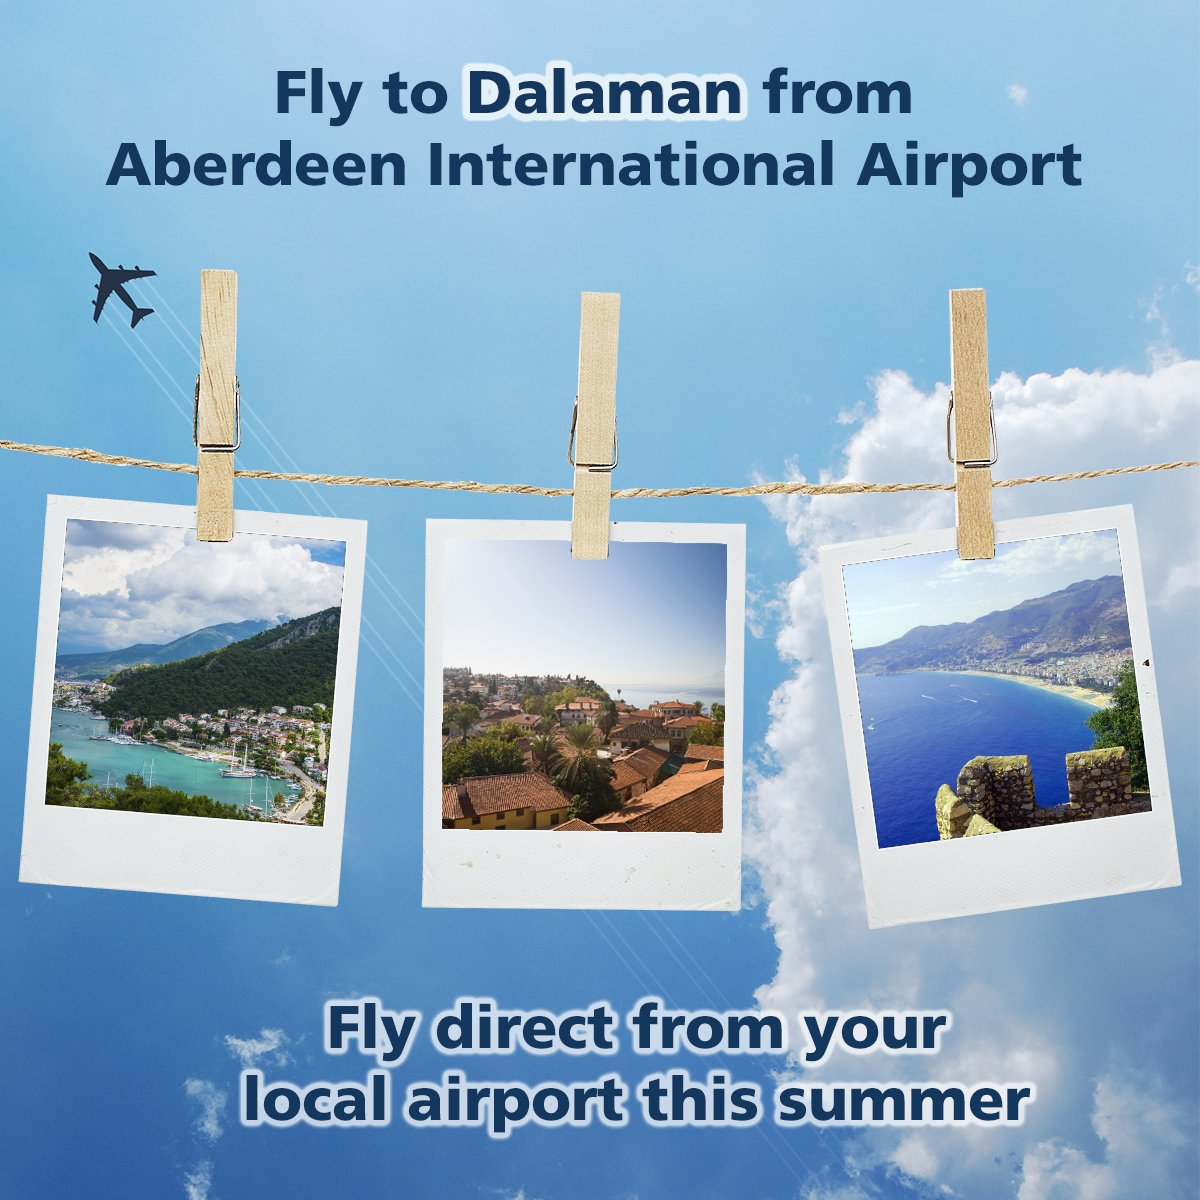 Fly direct to Dalaman from your local airport this summer!